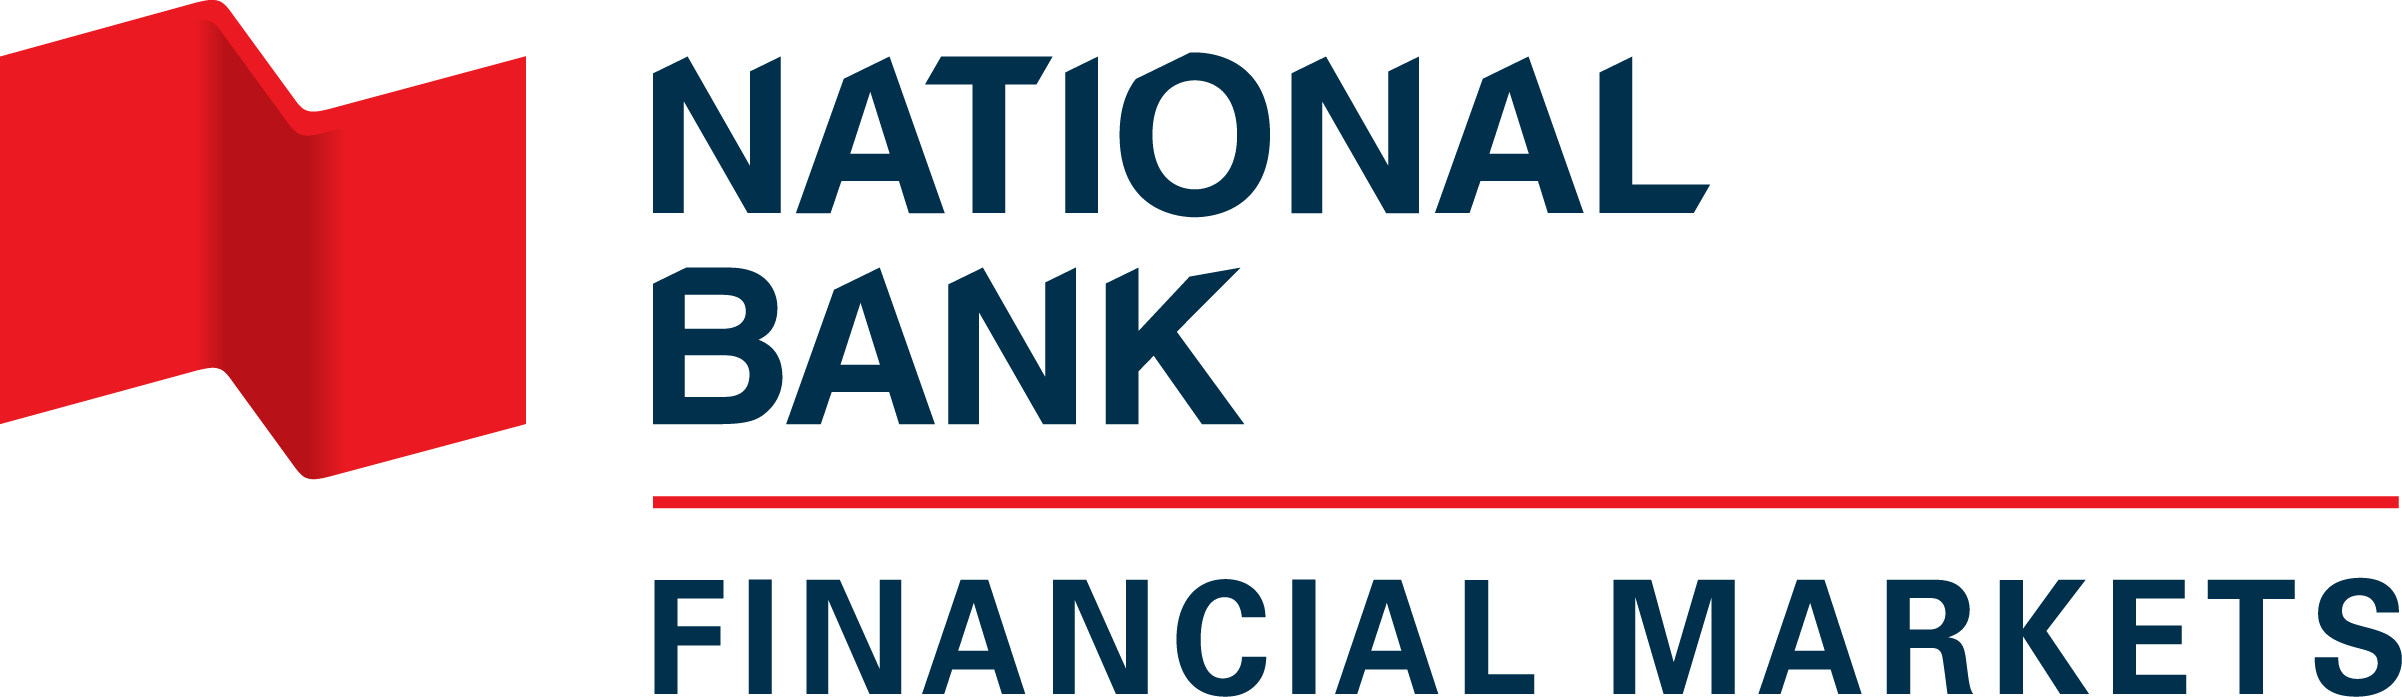 NBFM Logo with clear background.png